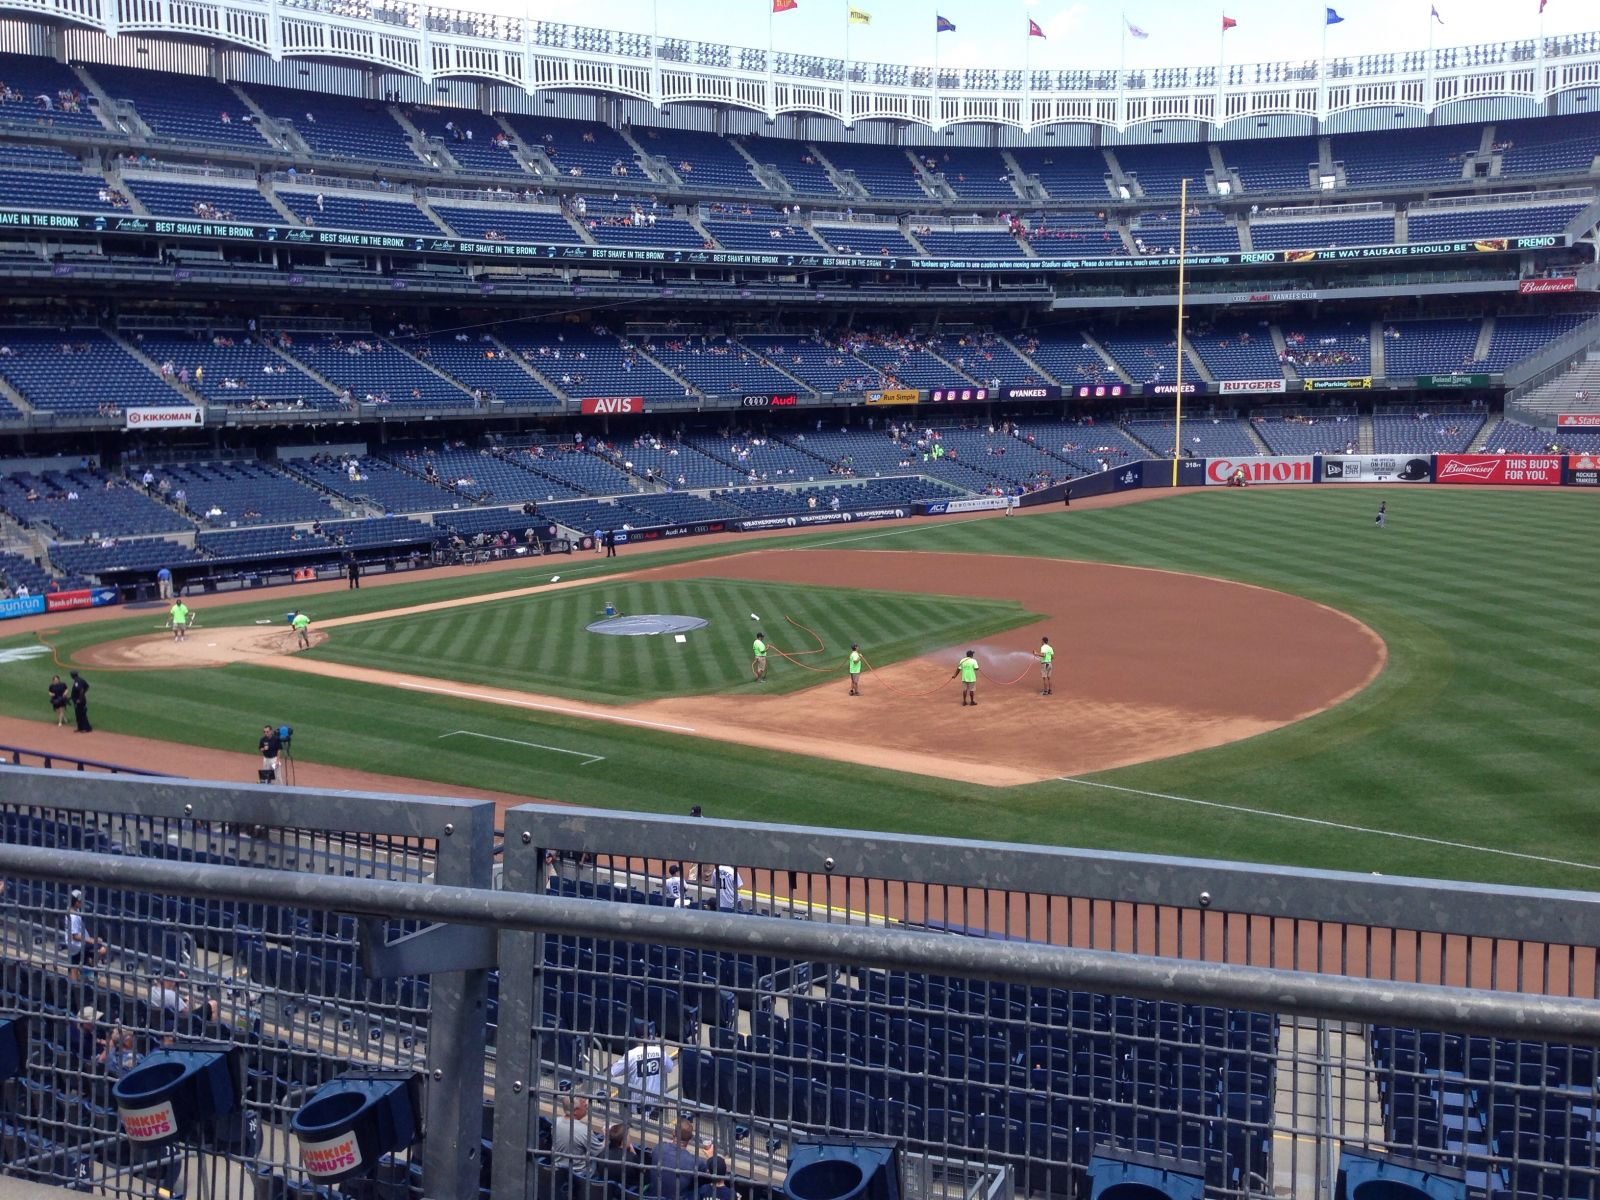 New York Yankees Seat View for Yankee Stadium Section 213, Row 2